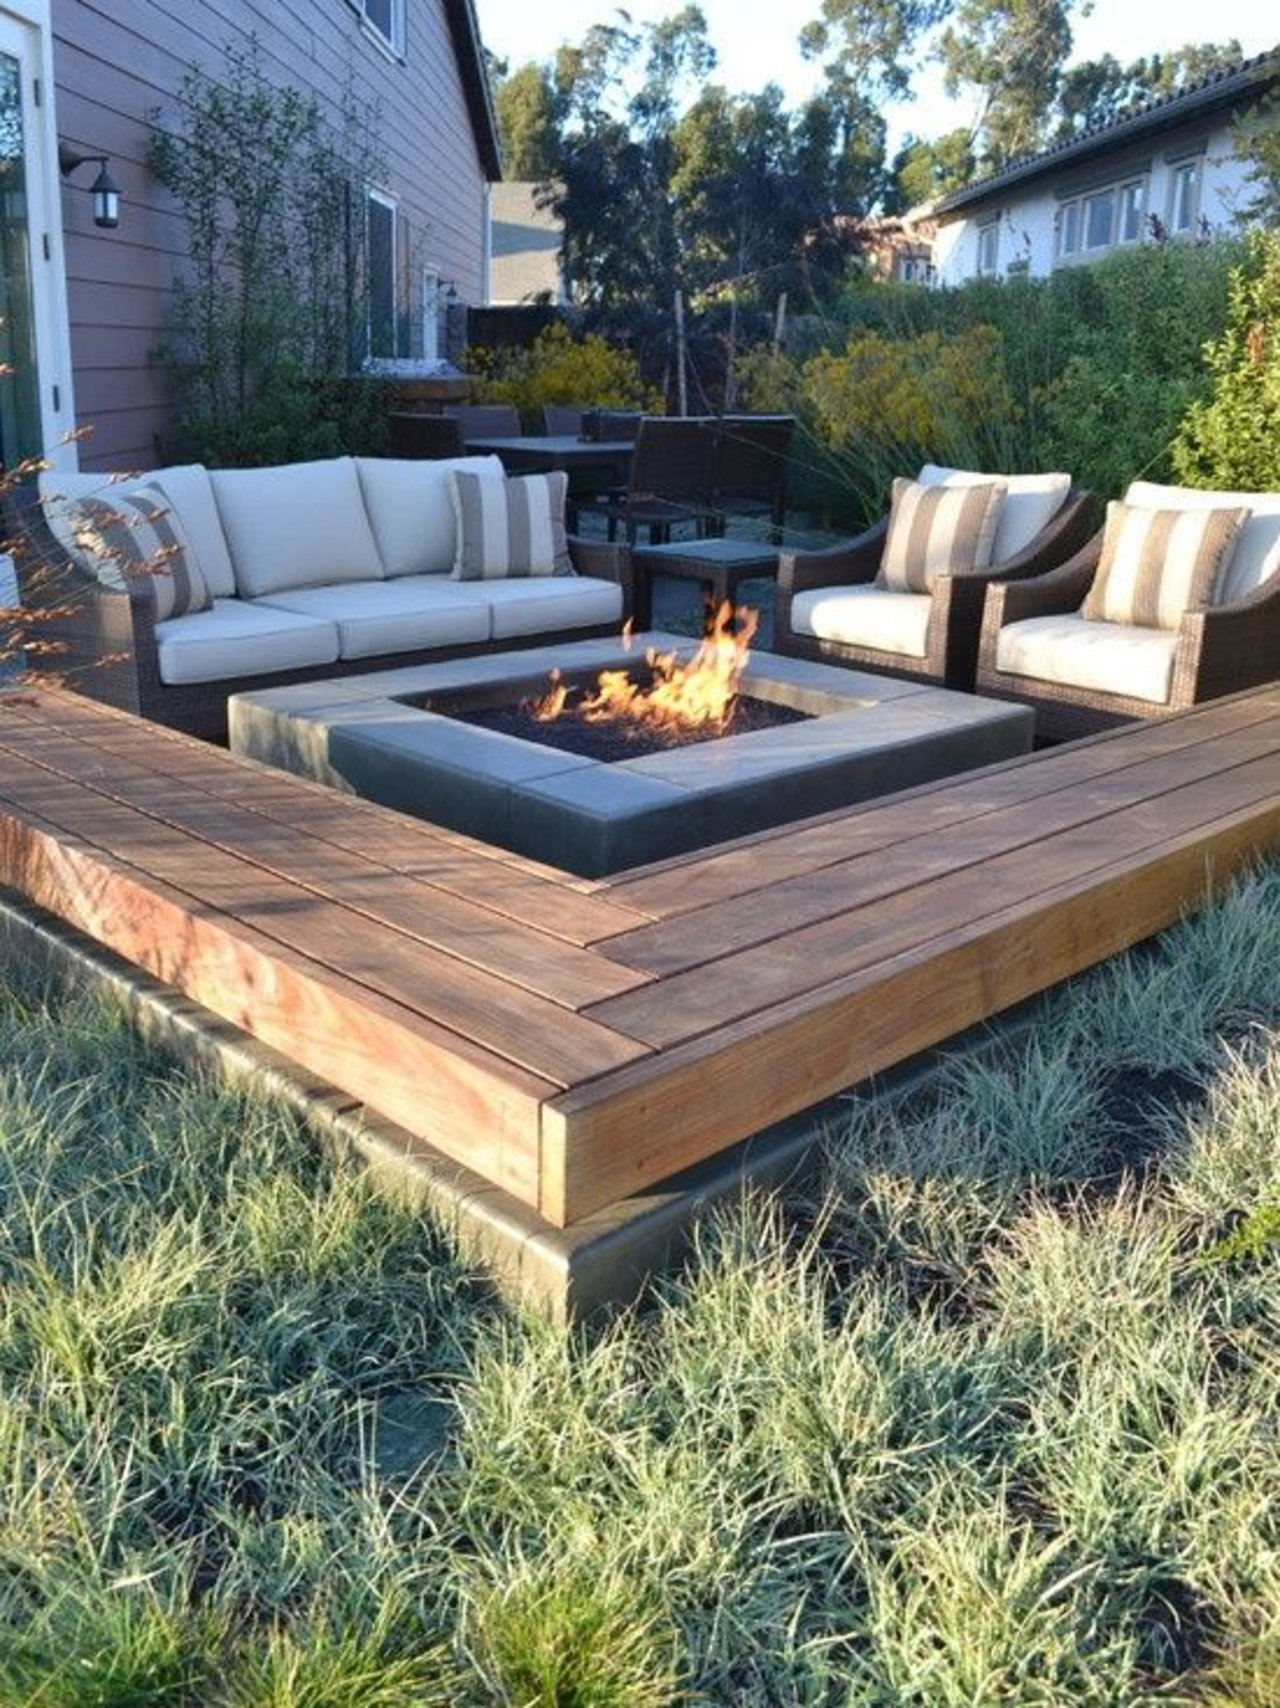 12. Centered Fire Pit With Sofa And Matching Armchairs